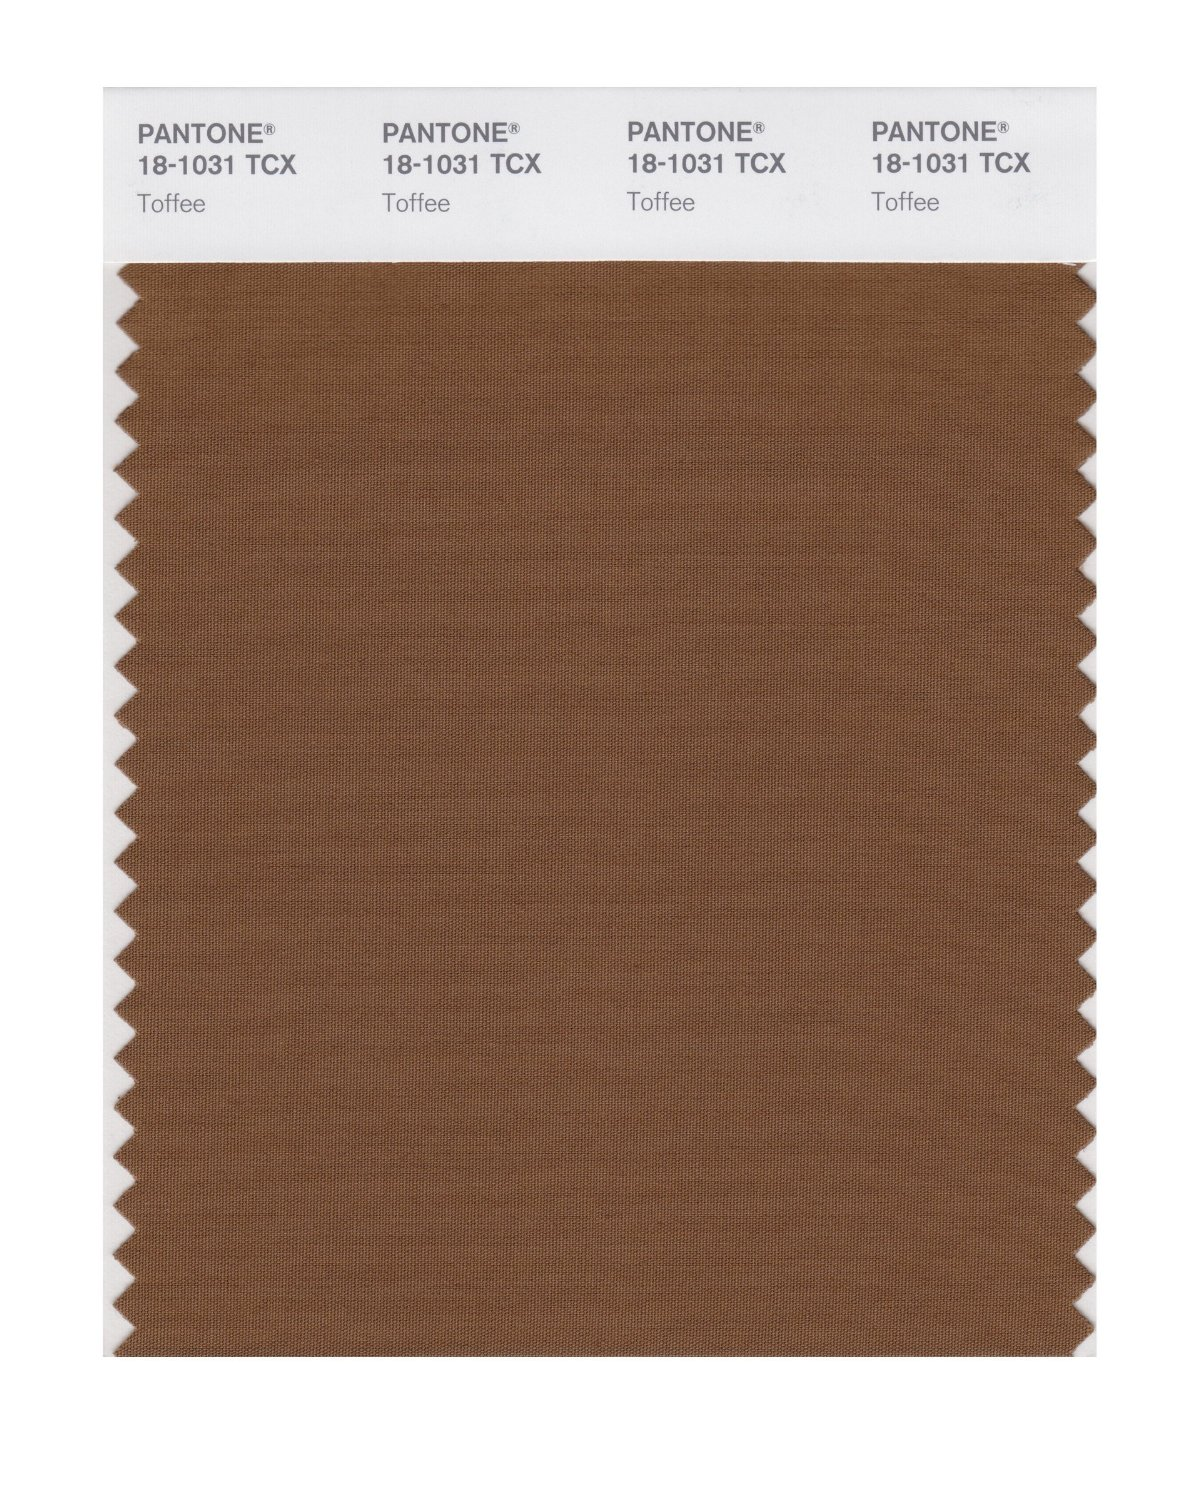 Pantone Smart Swatch 18-1031 Toffee